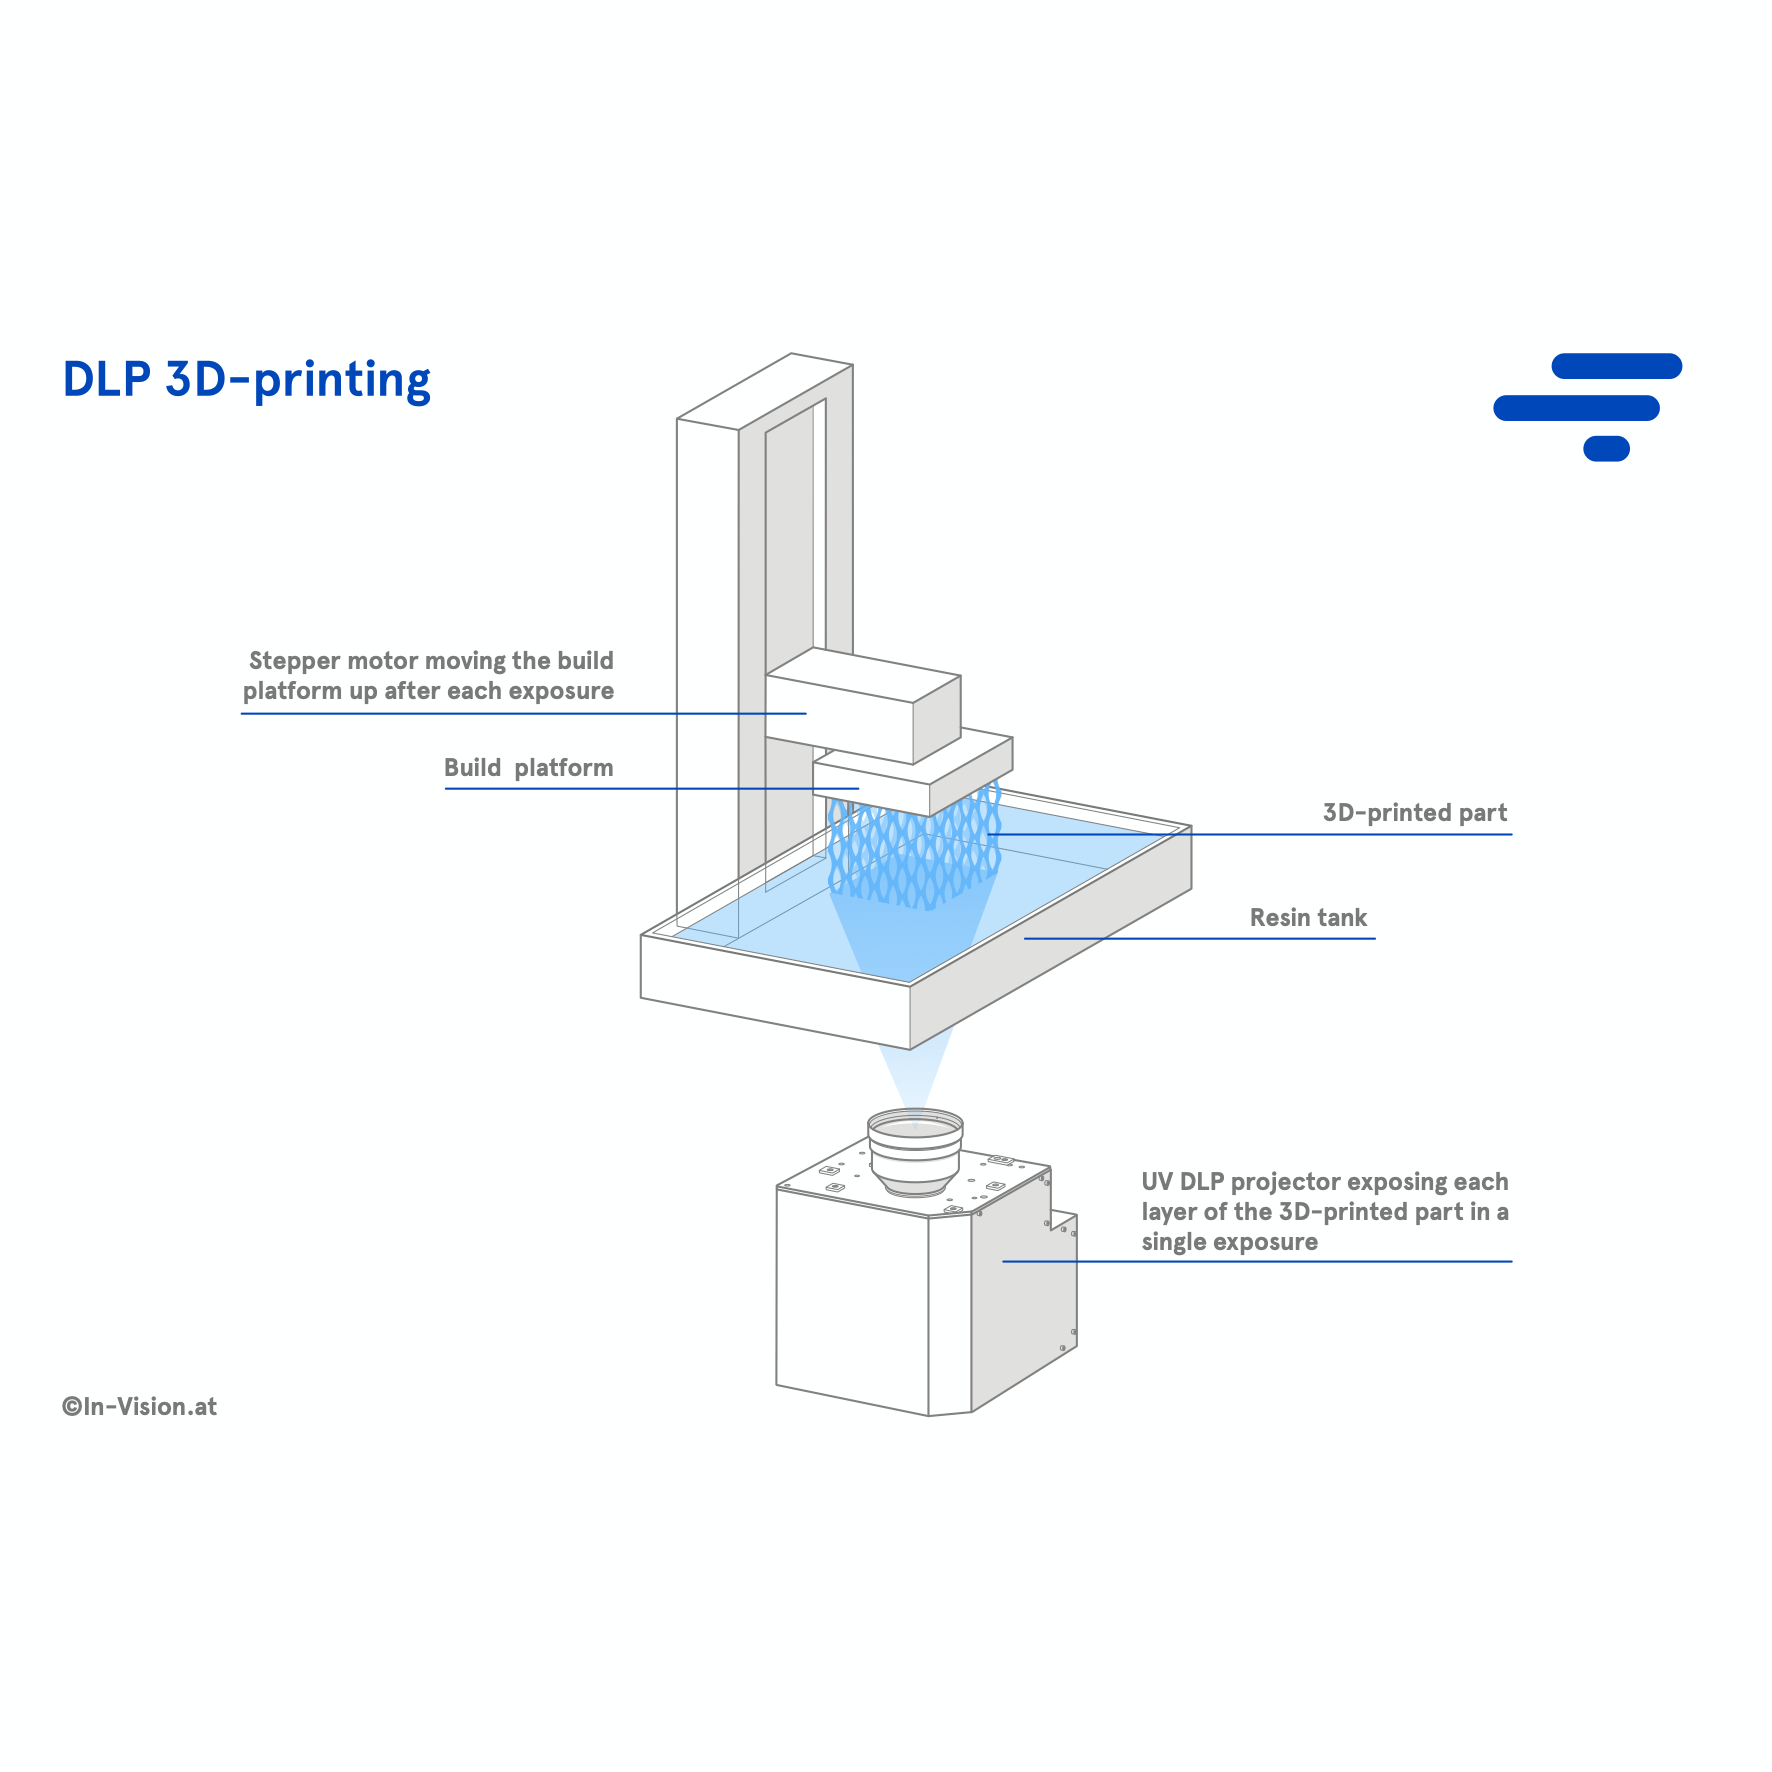 Basic principle of DLP 3D-printing. A UV projector projects an image onto the photopolymer bed and cures each layer of the object image after image.